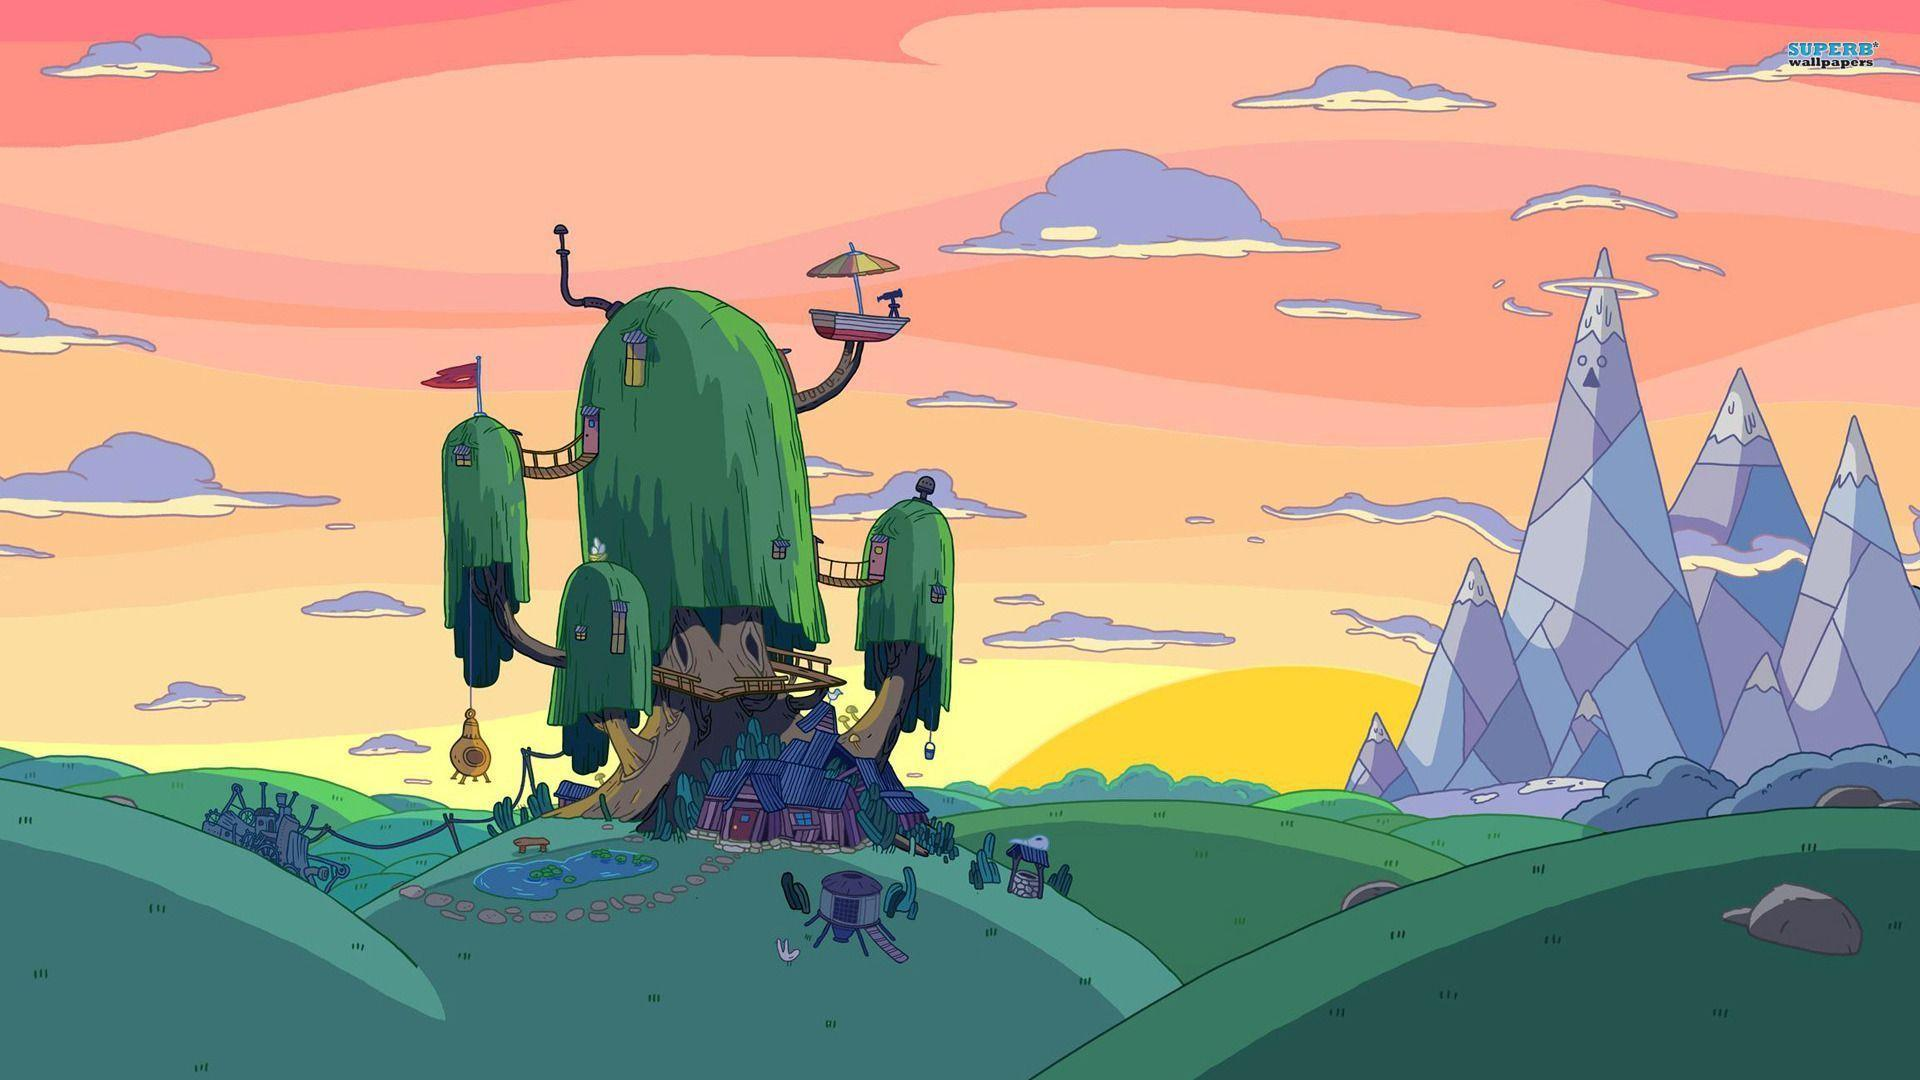 Adventure time wallpapers hd wallpaper cave adventure time wallpaper hd free download wallpaper desktop thecheapjerseys Choice Image